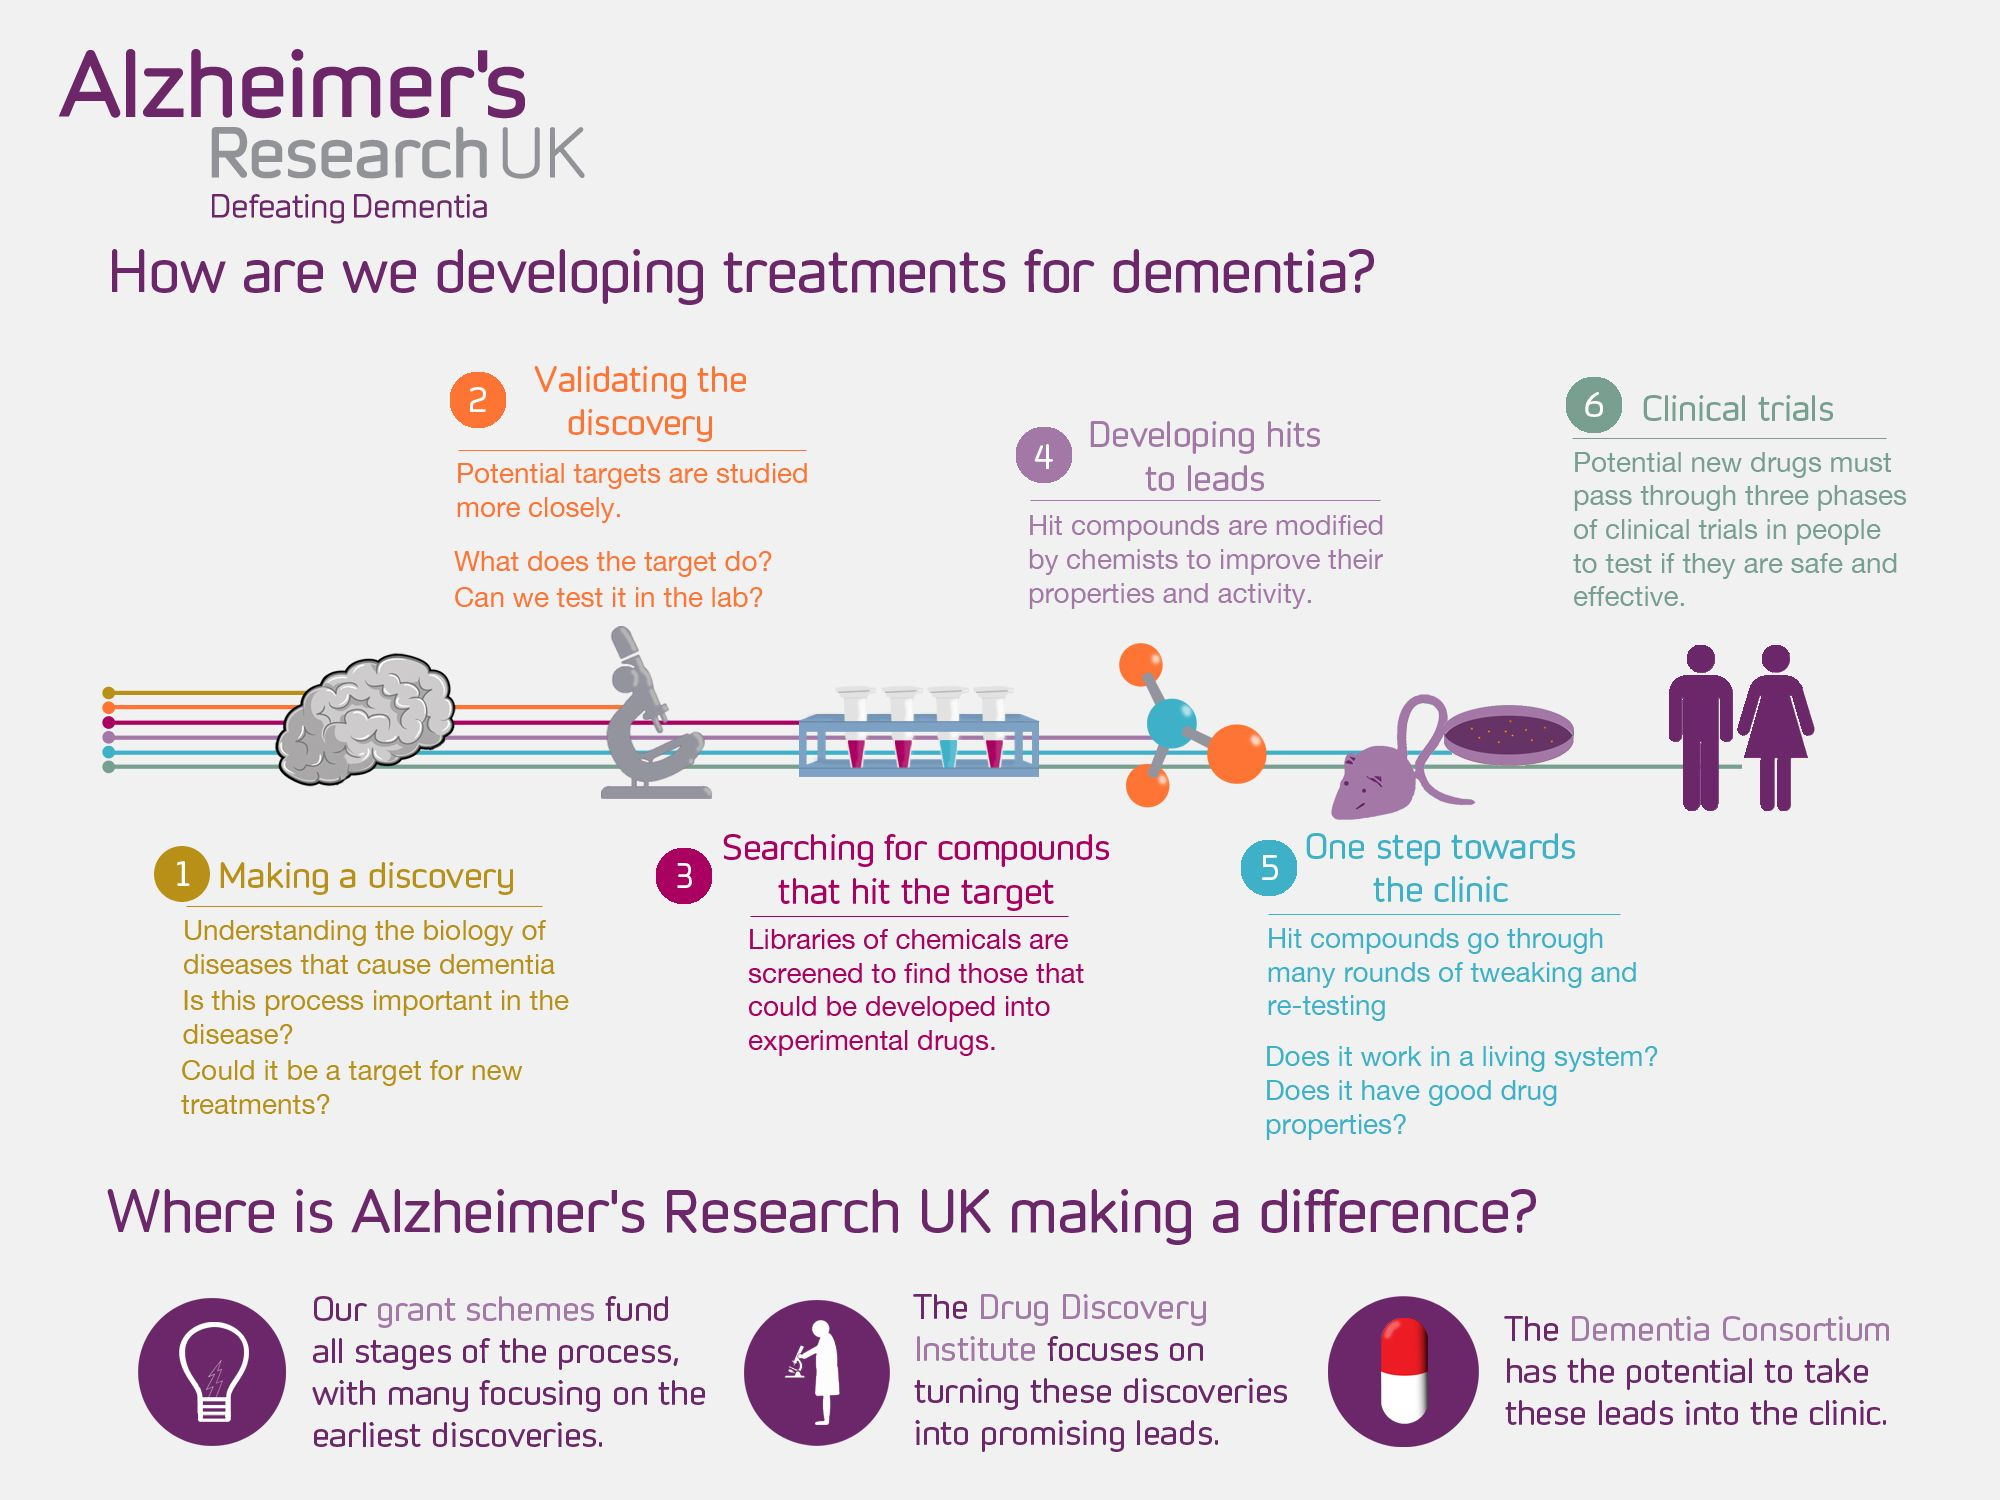 Could Modified Alzheimers Drug Treat >> How Are Alzheimer S Research Uk Developing Treatments For Dementia